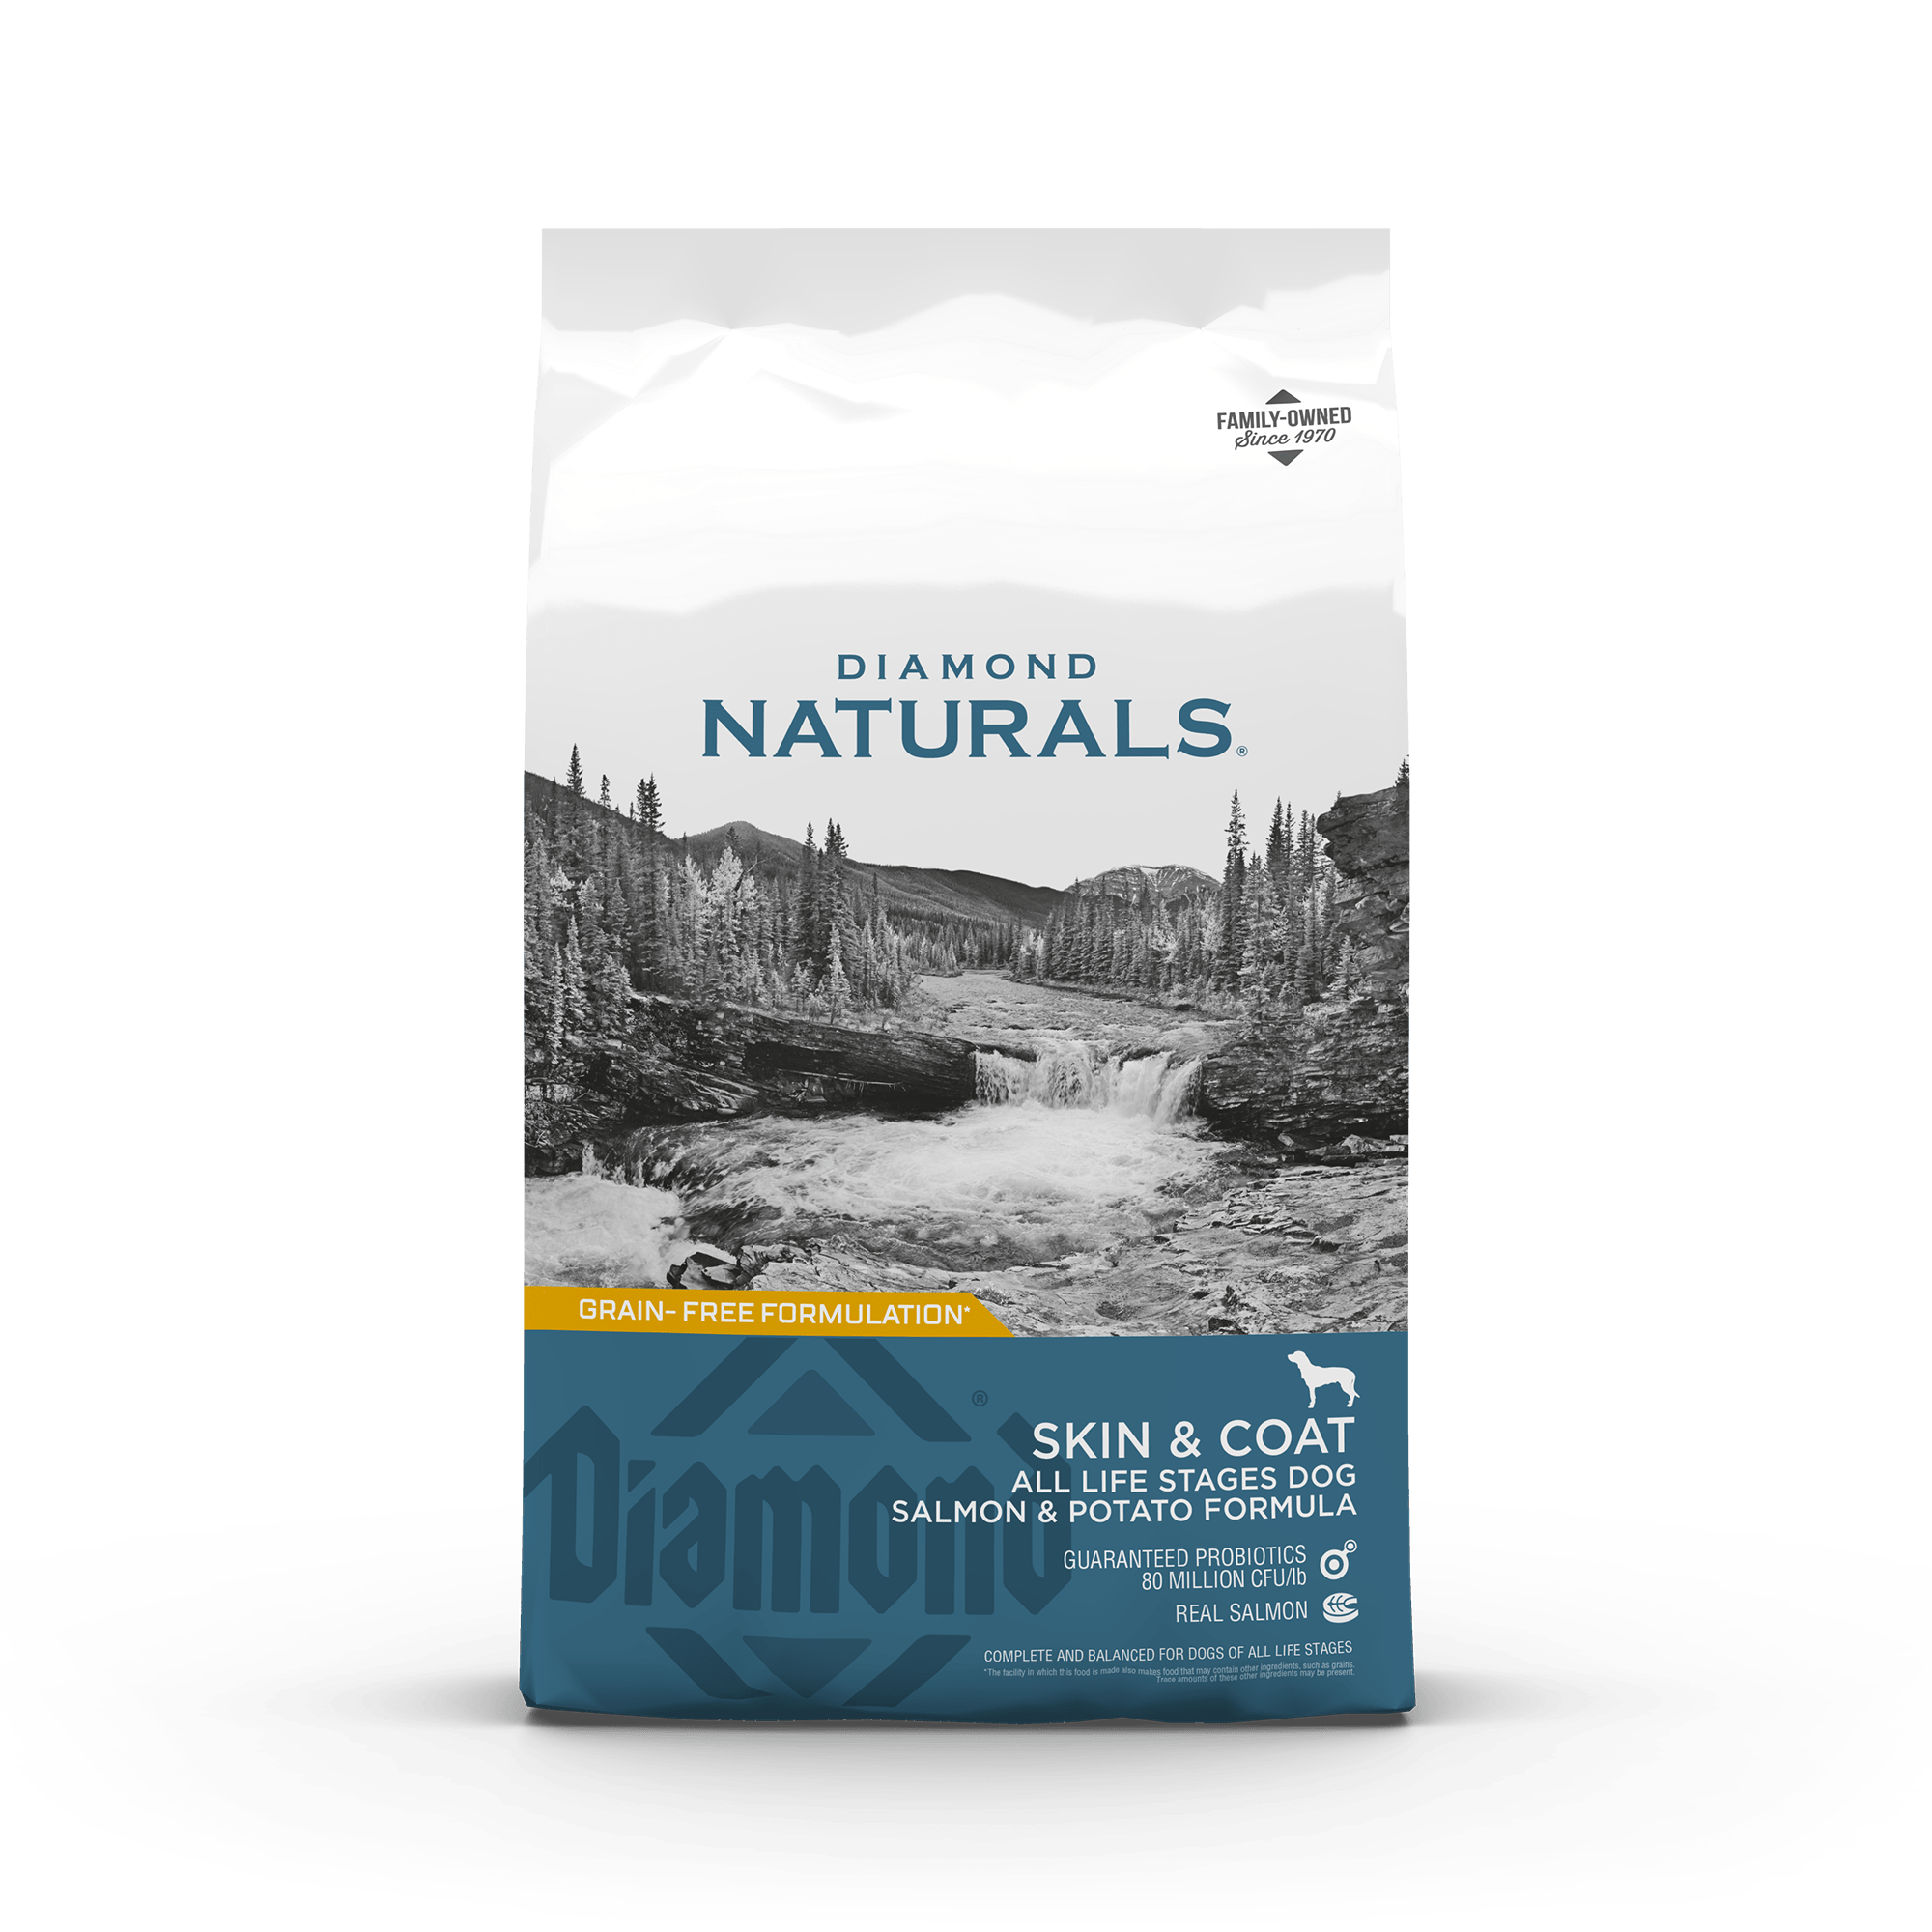 Diamond Naturals Skin & Coat All Life Stages Dog Salmon & Potato Formula front of bag | Diamond Pet Foods